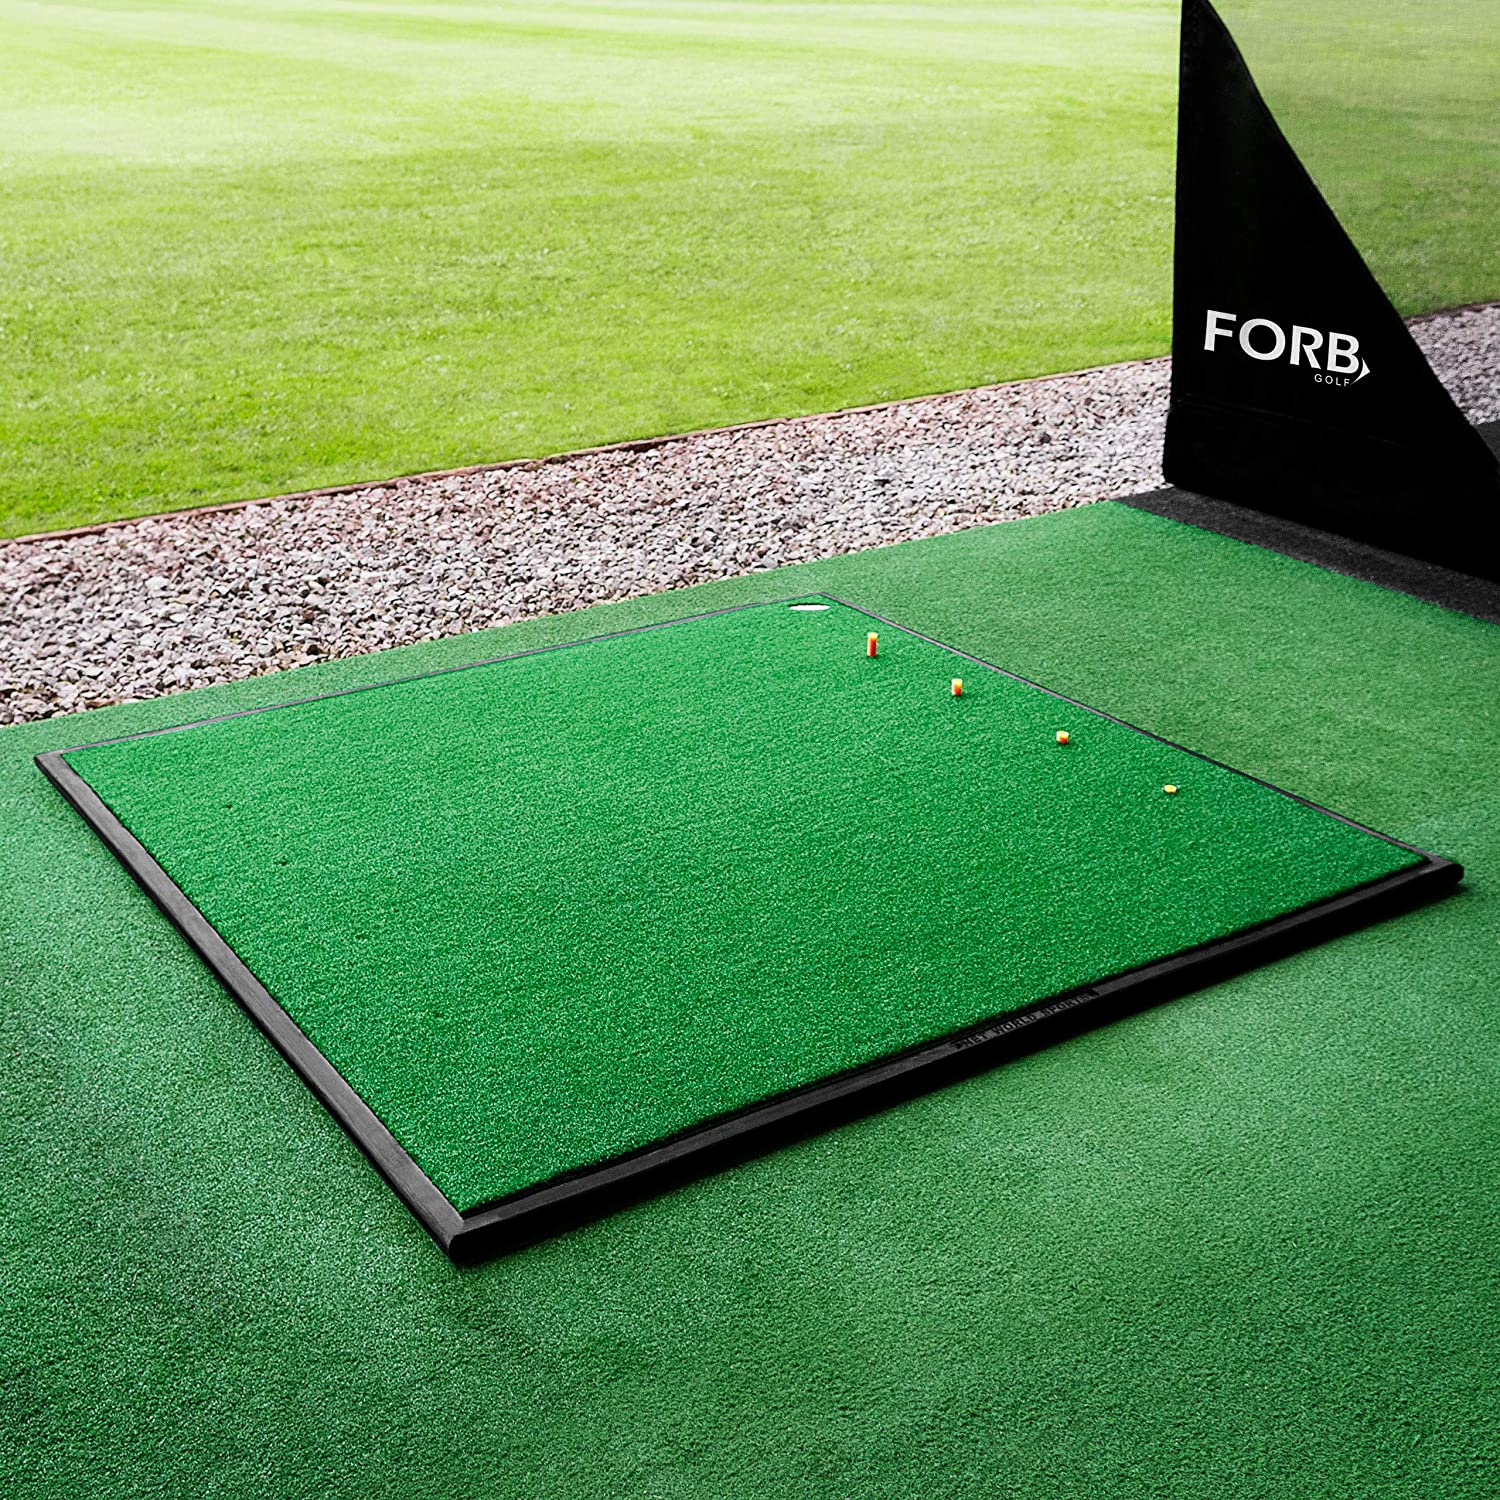 FORB Driving Range Golf Practice Mat Professional Quality Optional Rubber Base Tray